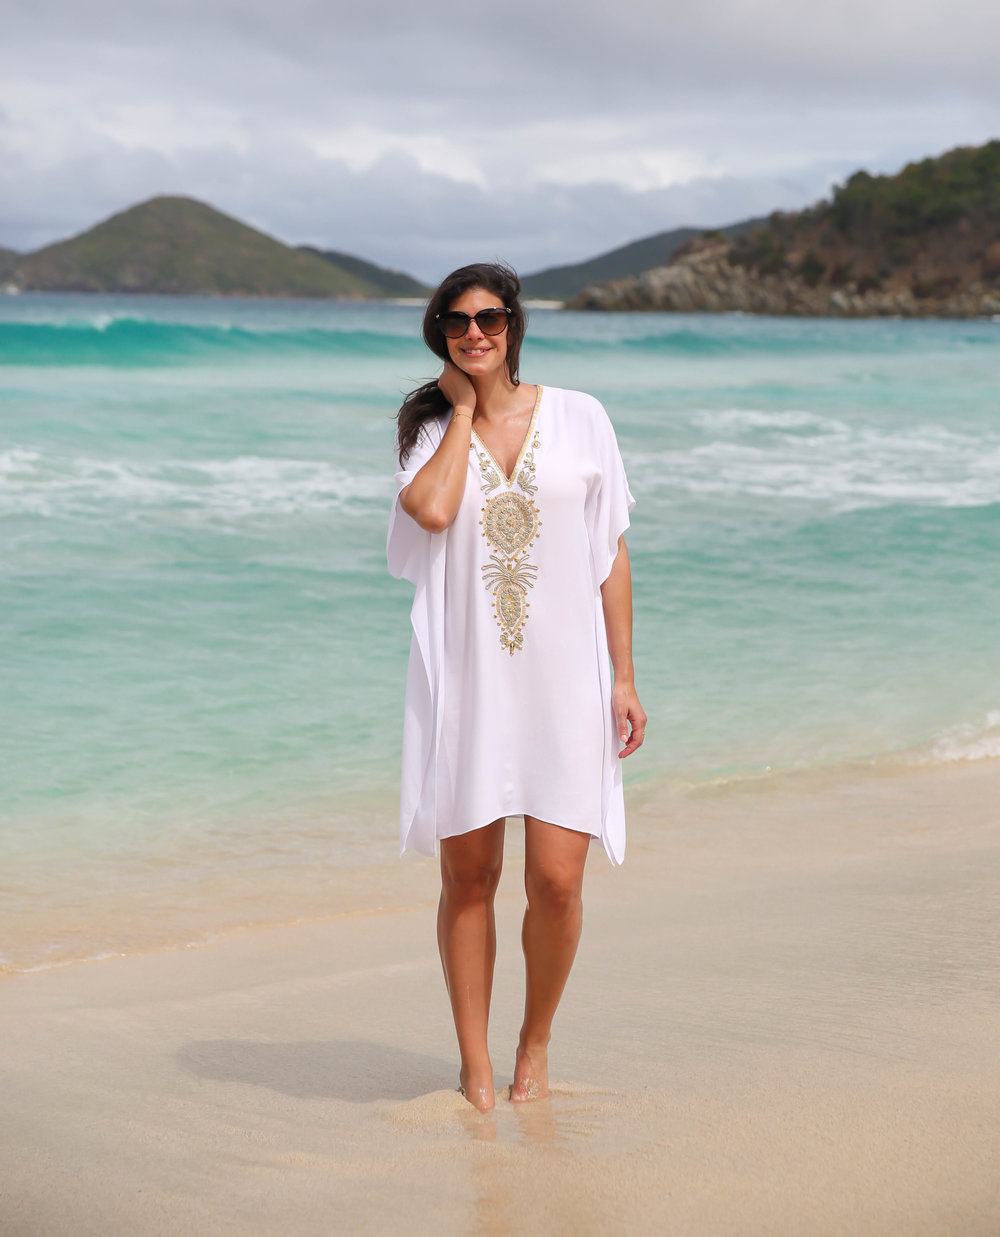 Lilly-Pulitzer-White-Beach-Cover-Up-Lauren-Schwaiger-Style-Blog.jpg